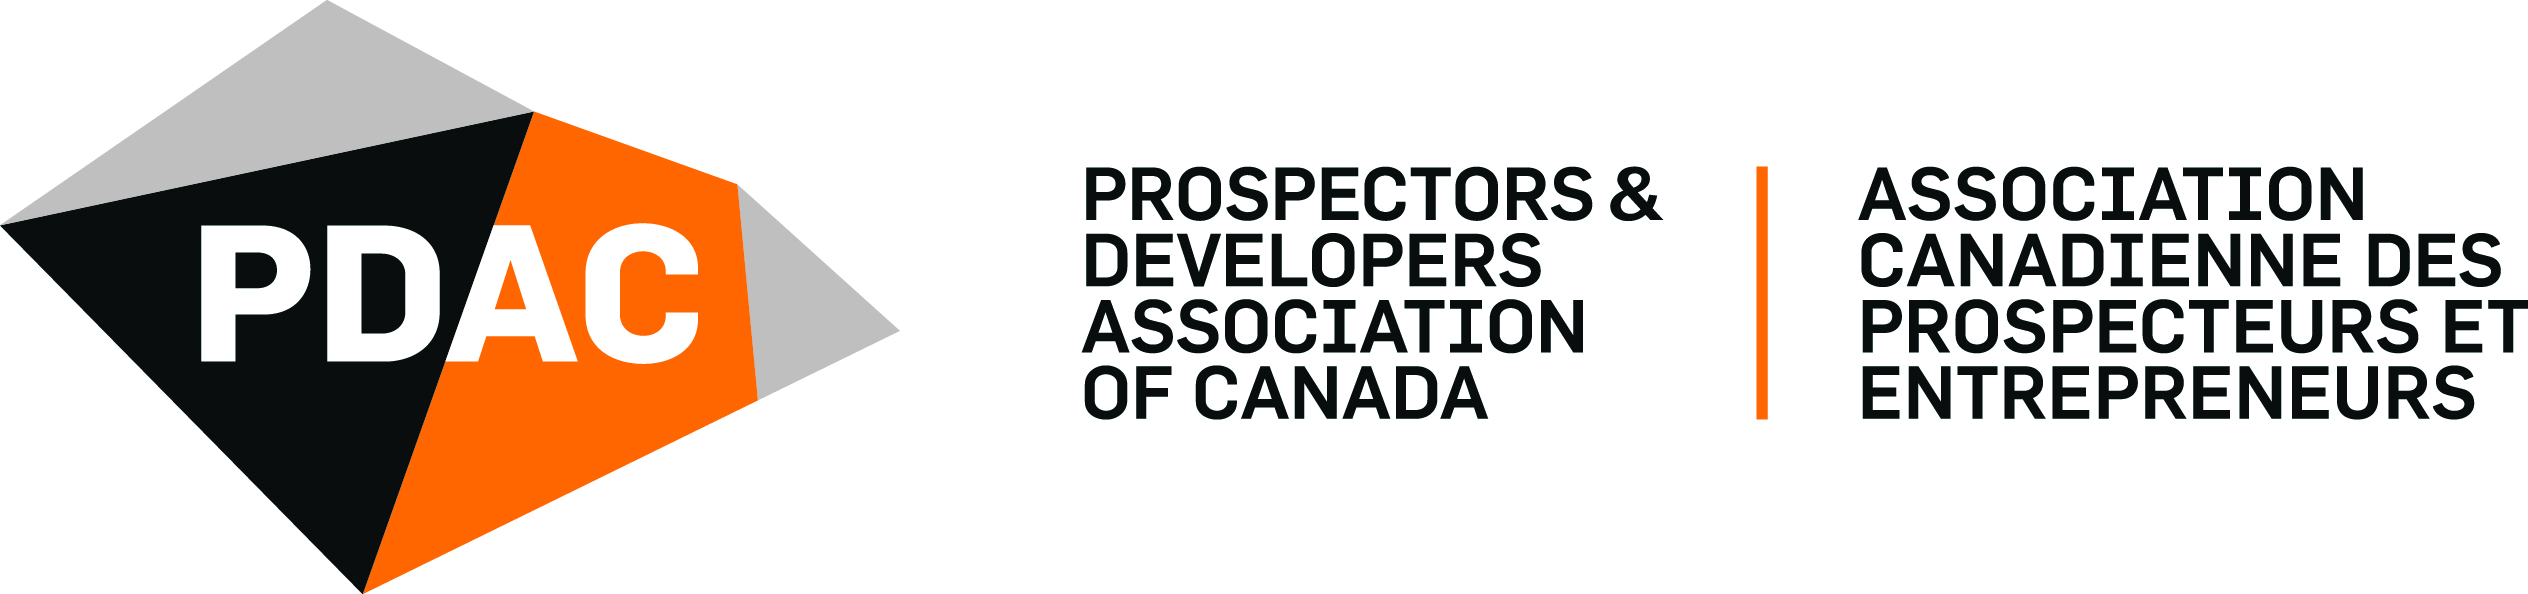 PDAC congratulates Prime Minister Justin Trudeau and all elected MPs of Canada's 43rd Parliament